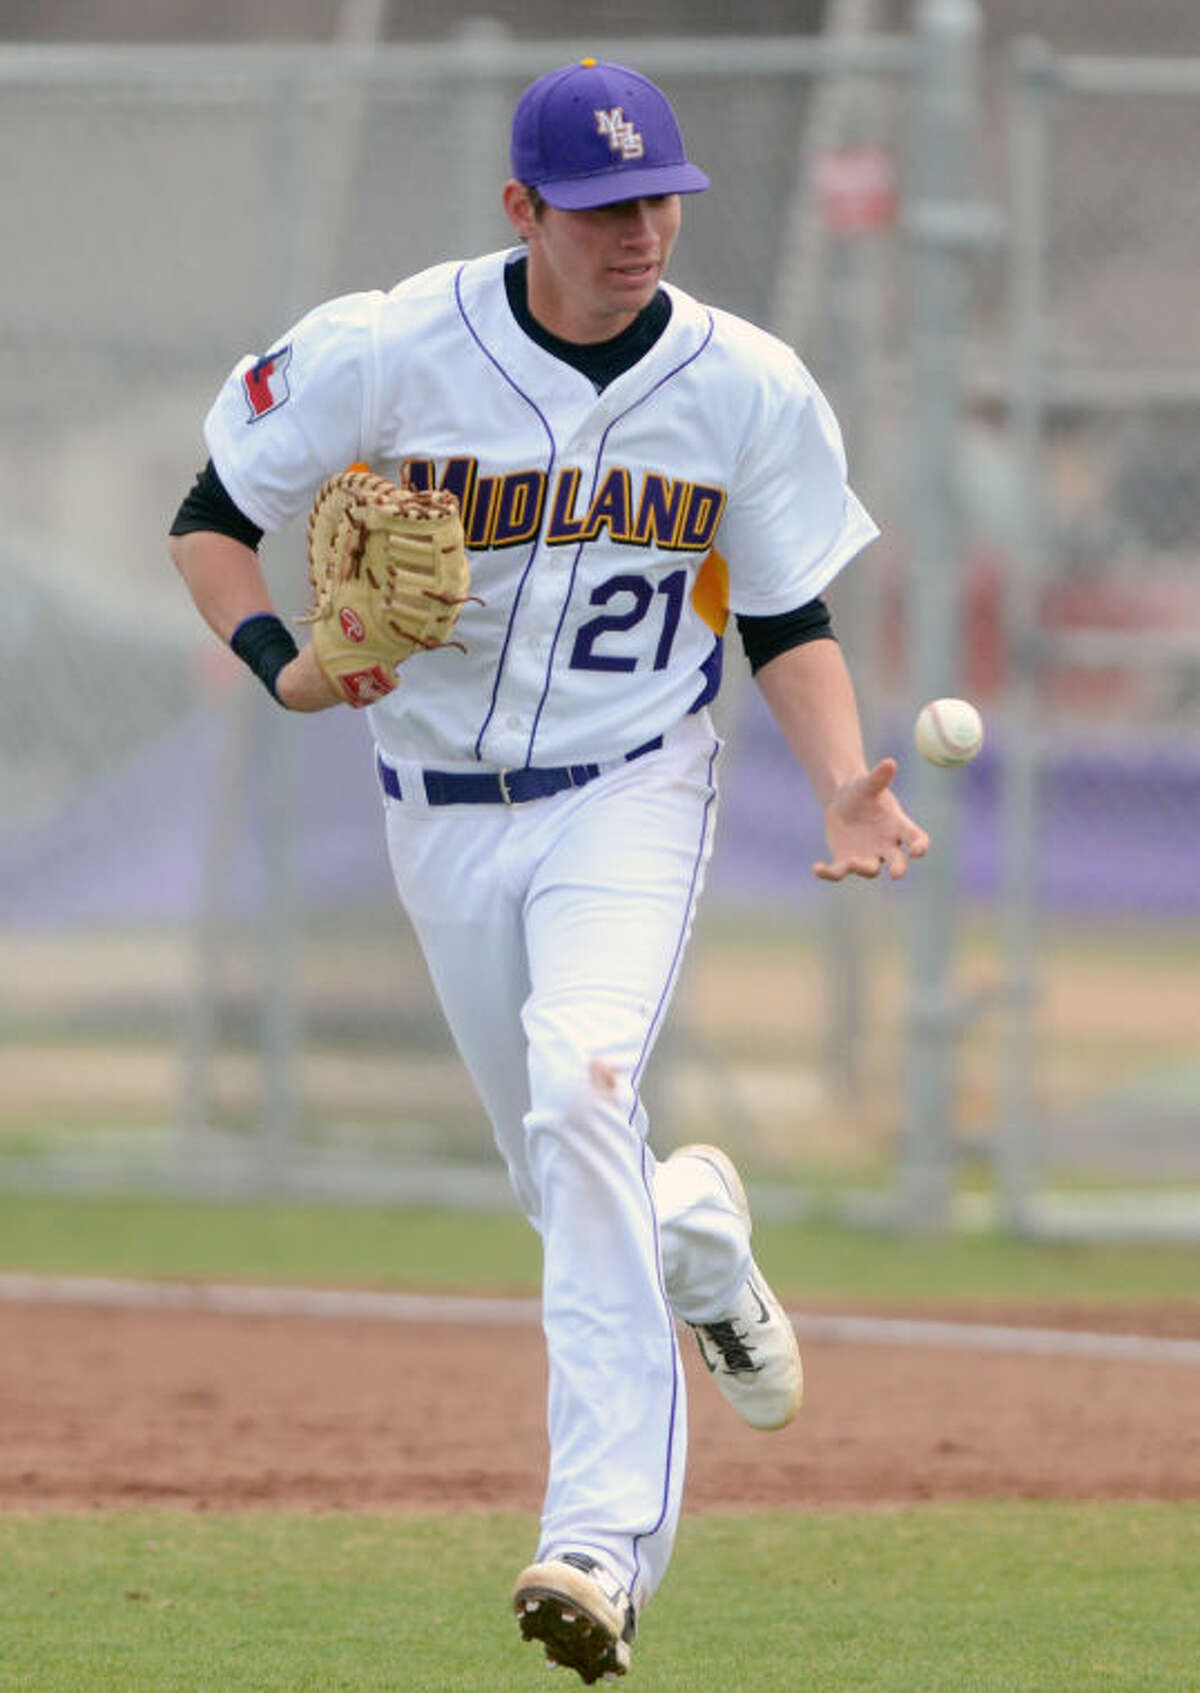 Midland High's Travis Wilbanks runs off the field after closing out the inning with an out at first base during the game against Odessa High on March 8 at Zachery Field. James Durbin/Reporter-Telegram